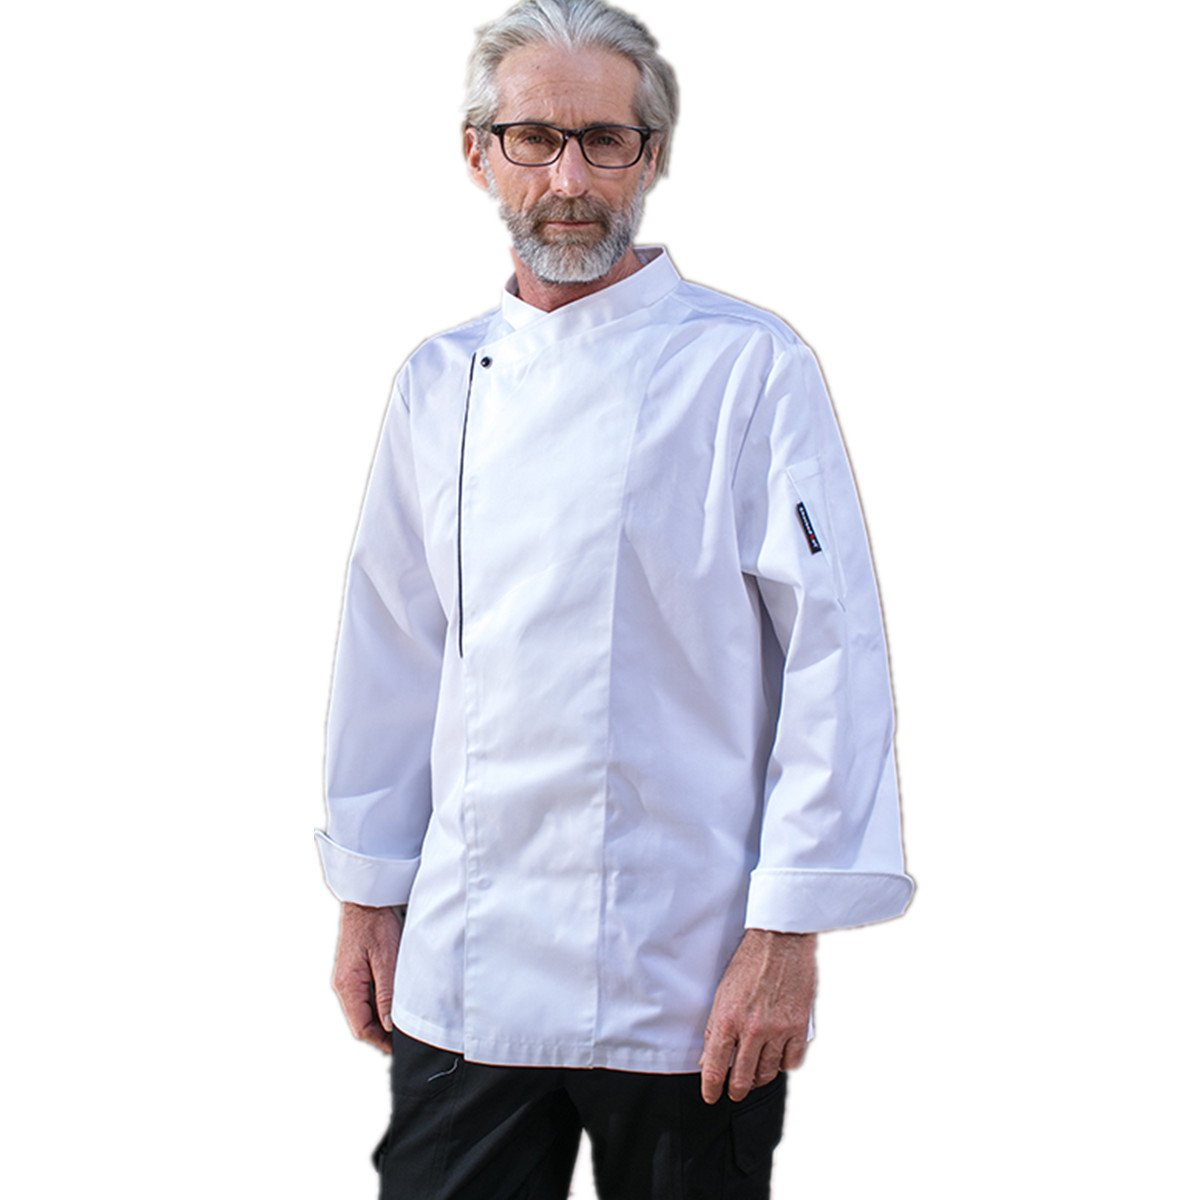 XINFU Chef Uniforms Unisex Long Sleeve Coat Catering Jackets 1 Pearl Button Chef Coat by XINFU